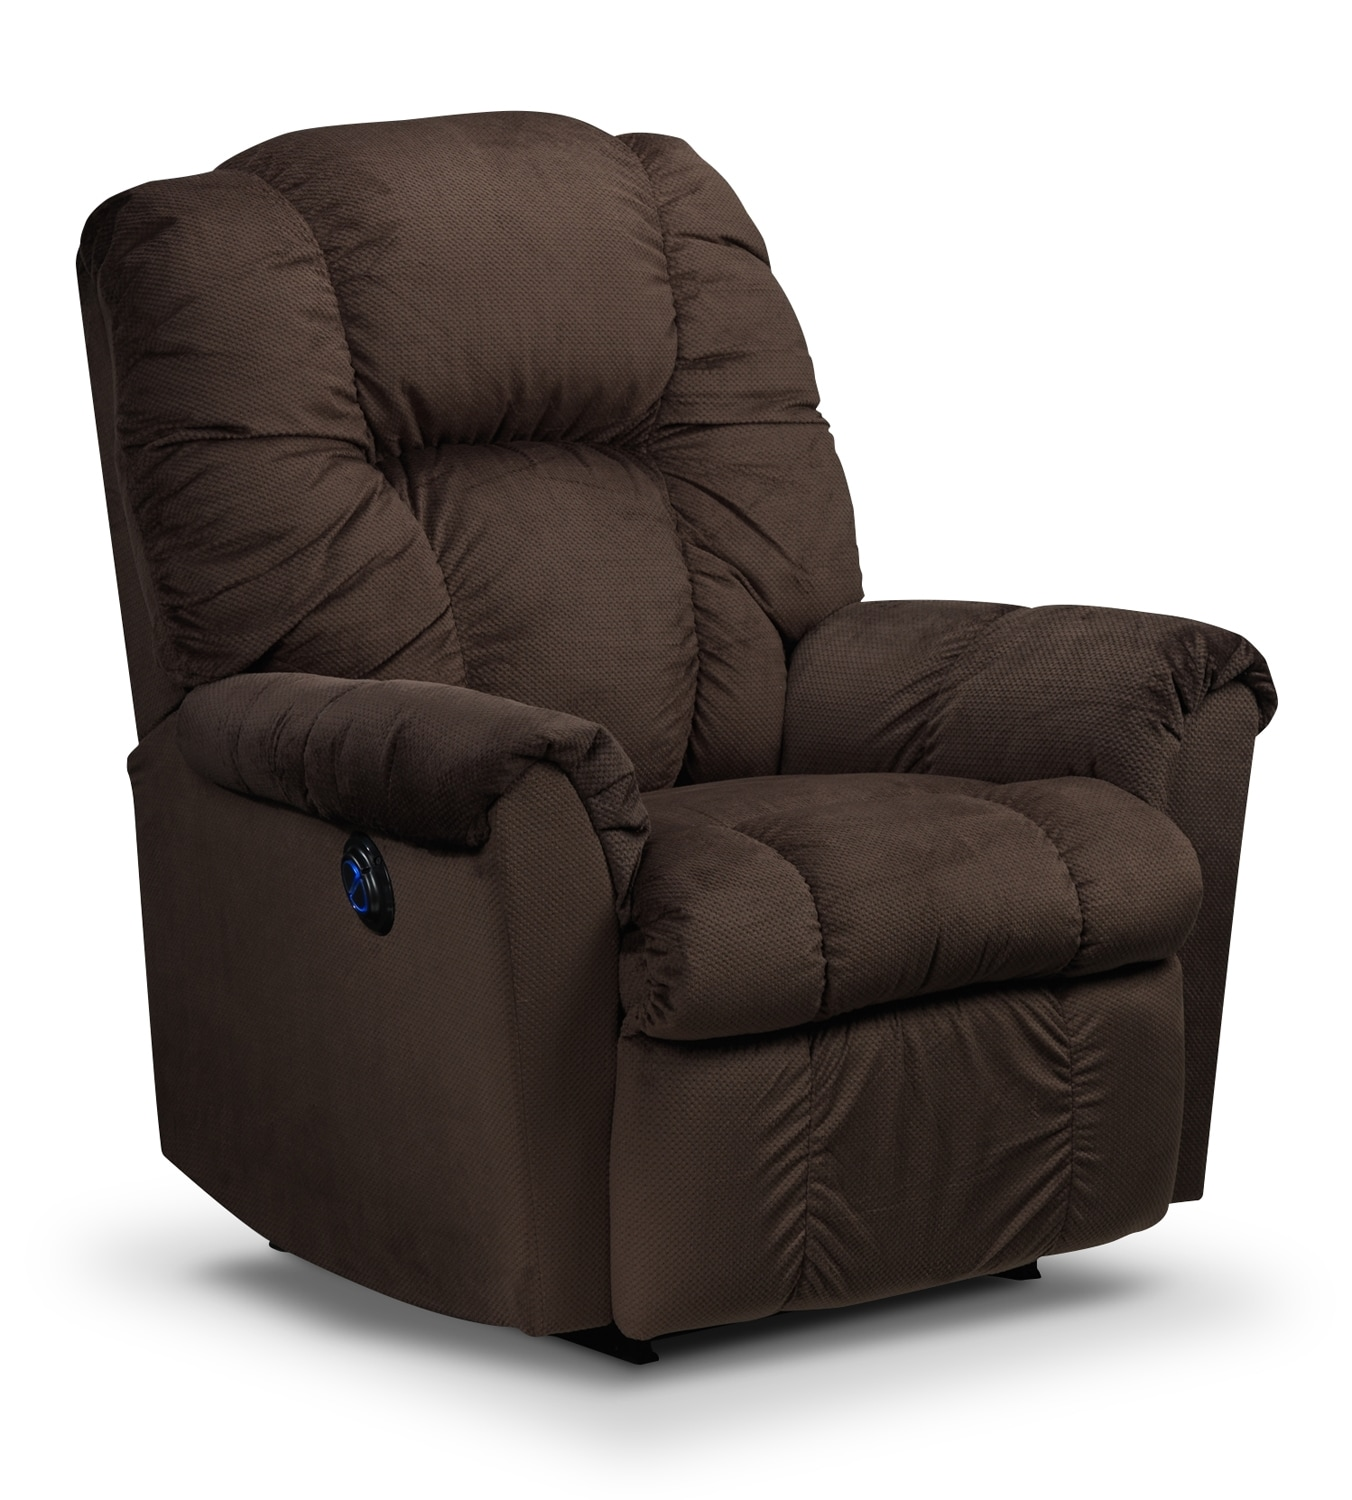 Living Room Furniture - Amaretto Power Rocker Recliner - Brown